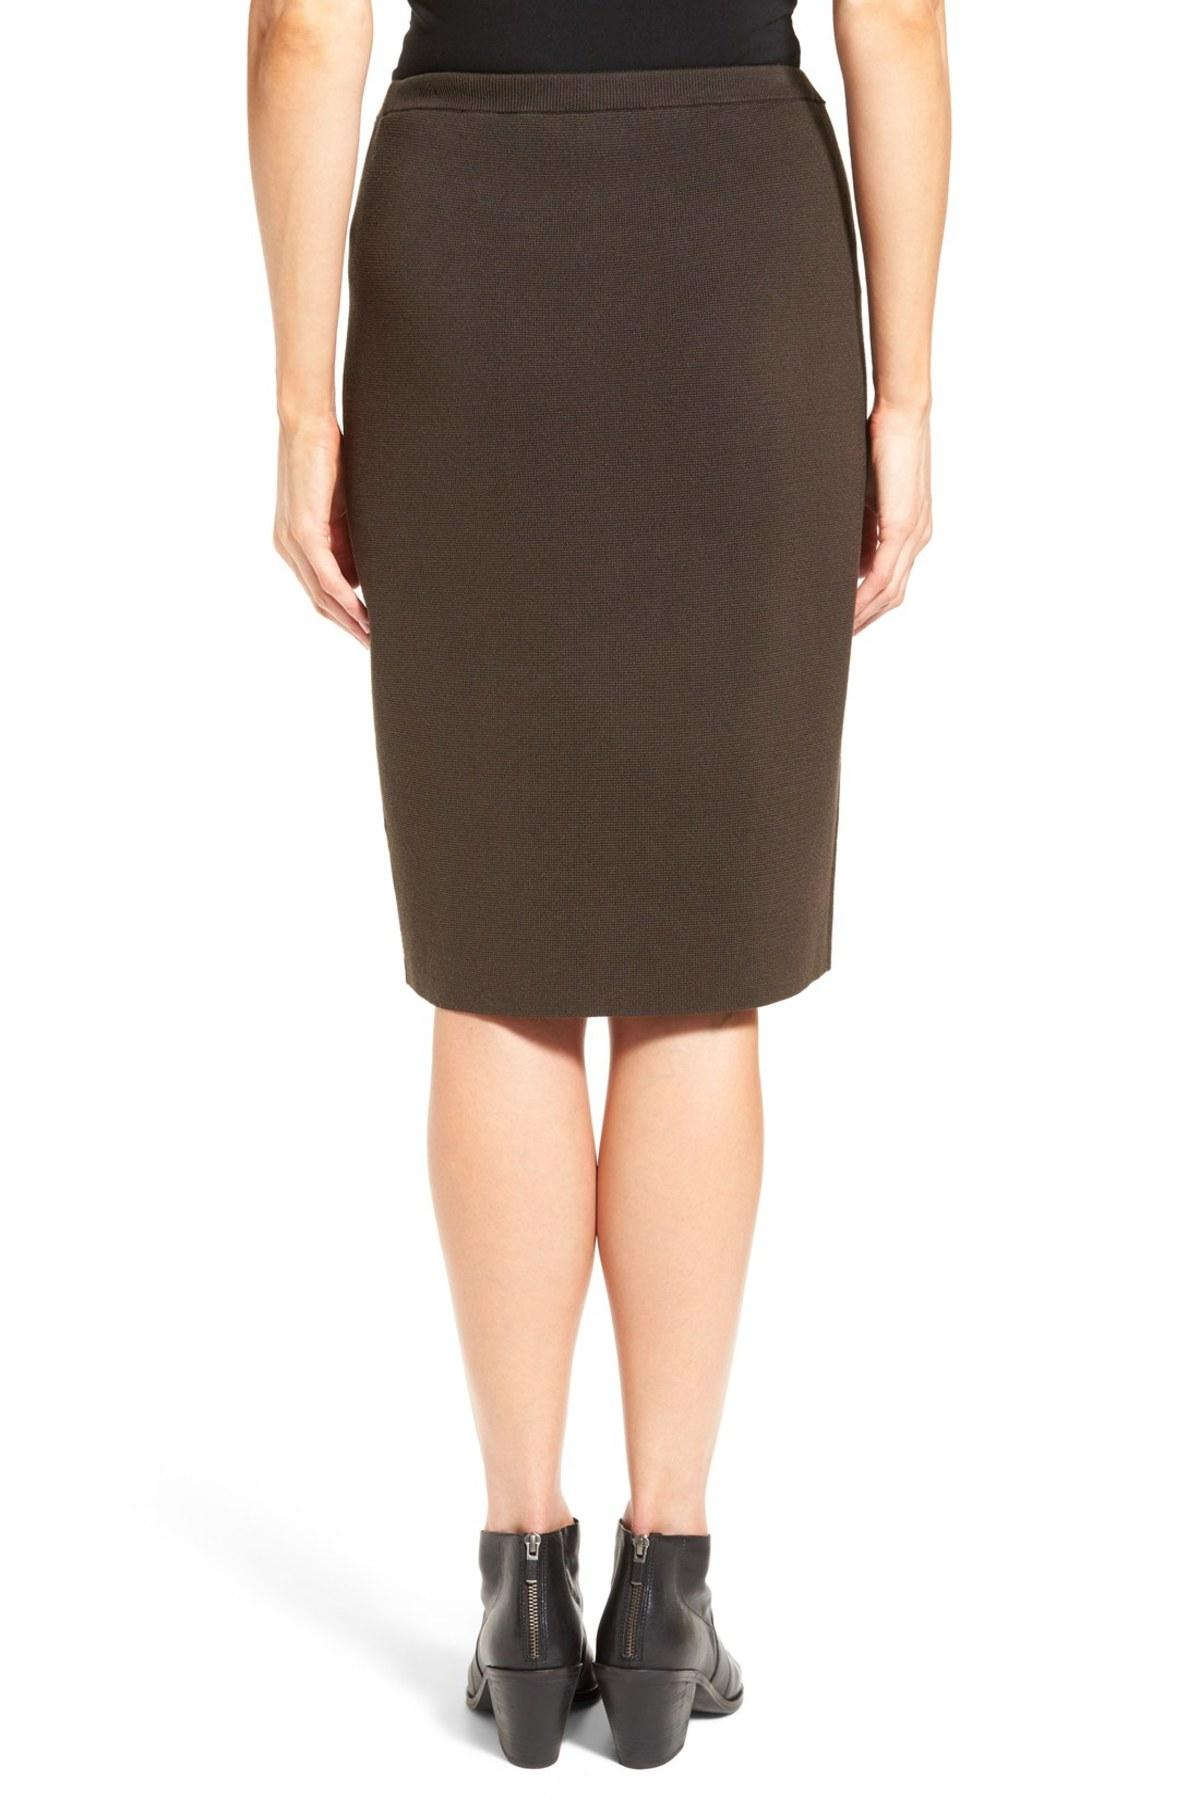 Job Brown straight skirt outfit...this